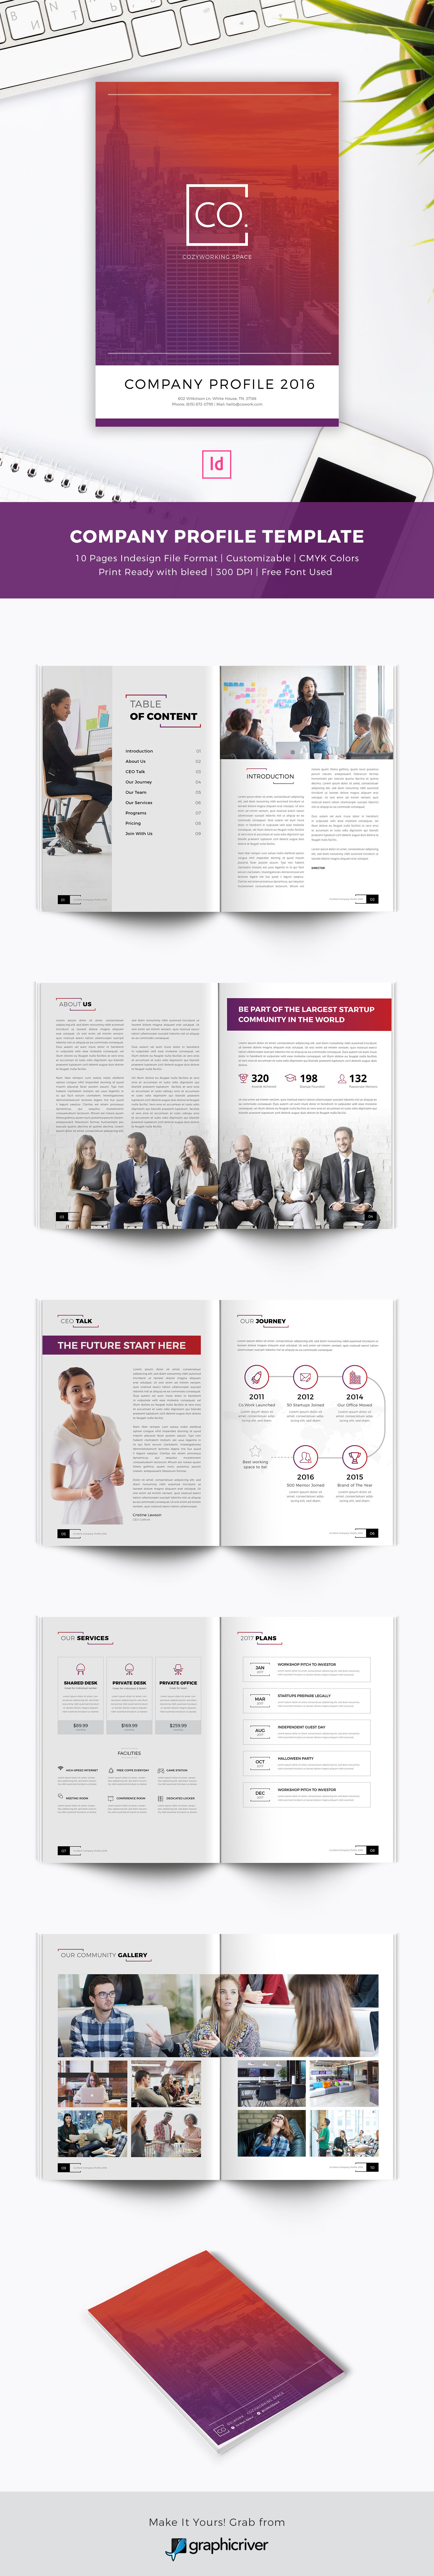 CoWork Company Profile Indesign Template on Behance